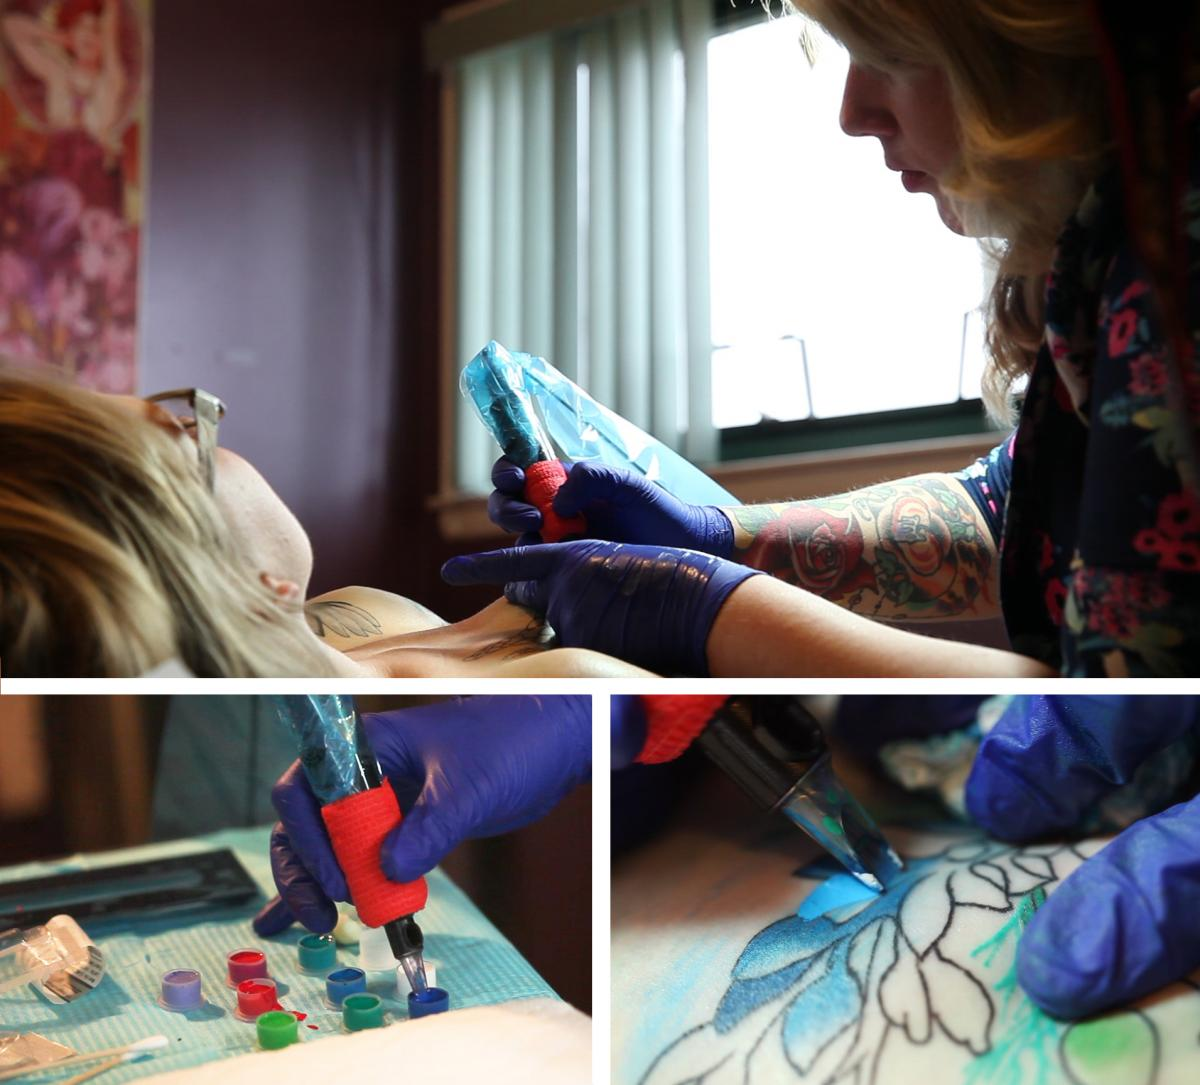 """O'Hara's tattoo required three sessions with Lisa Doll to complete the line work and color shading. Doll says that clients """"get these tattoos to represent things about themselves. It becomes an empowering thing for them, an expressive thing."""""""